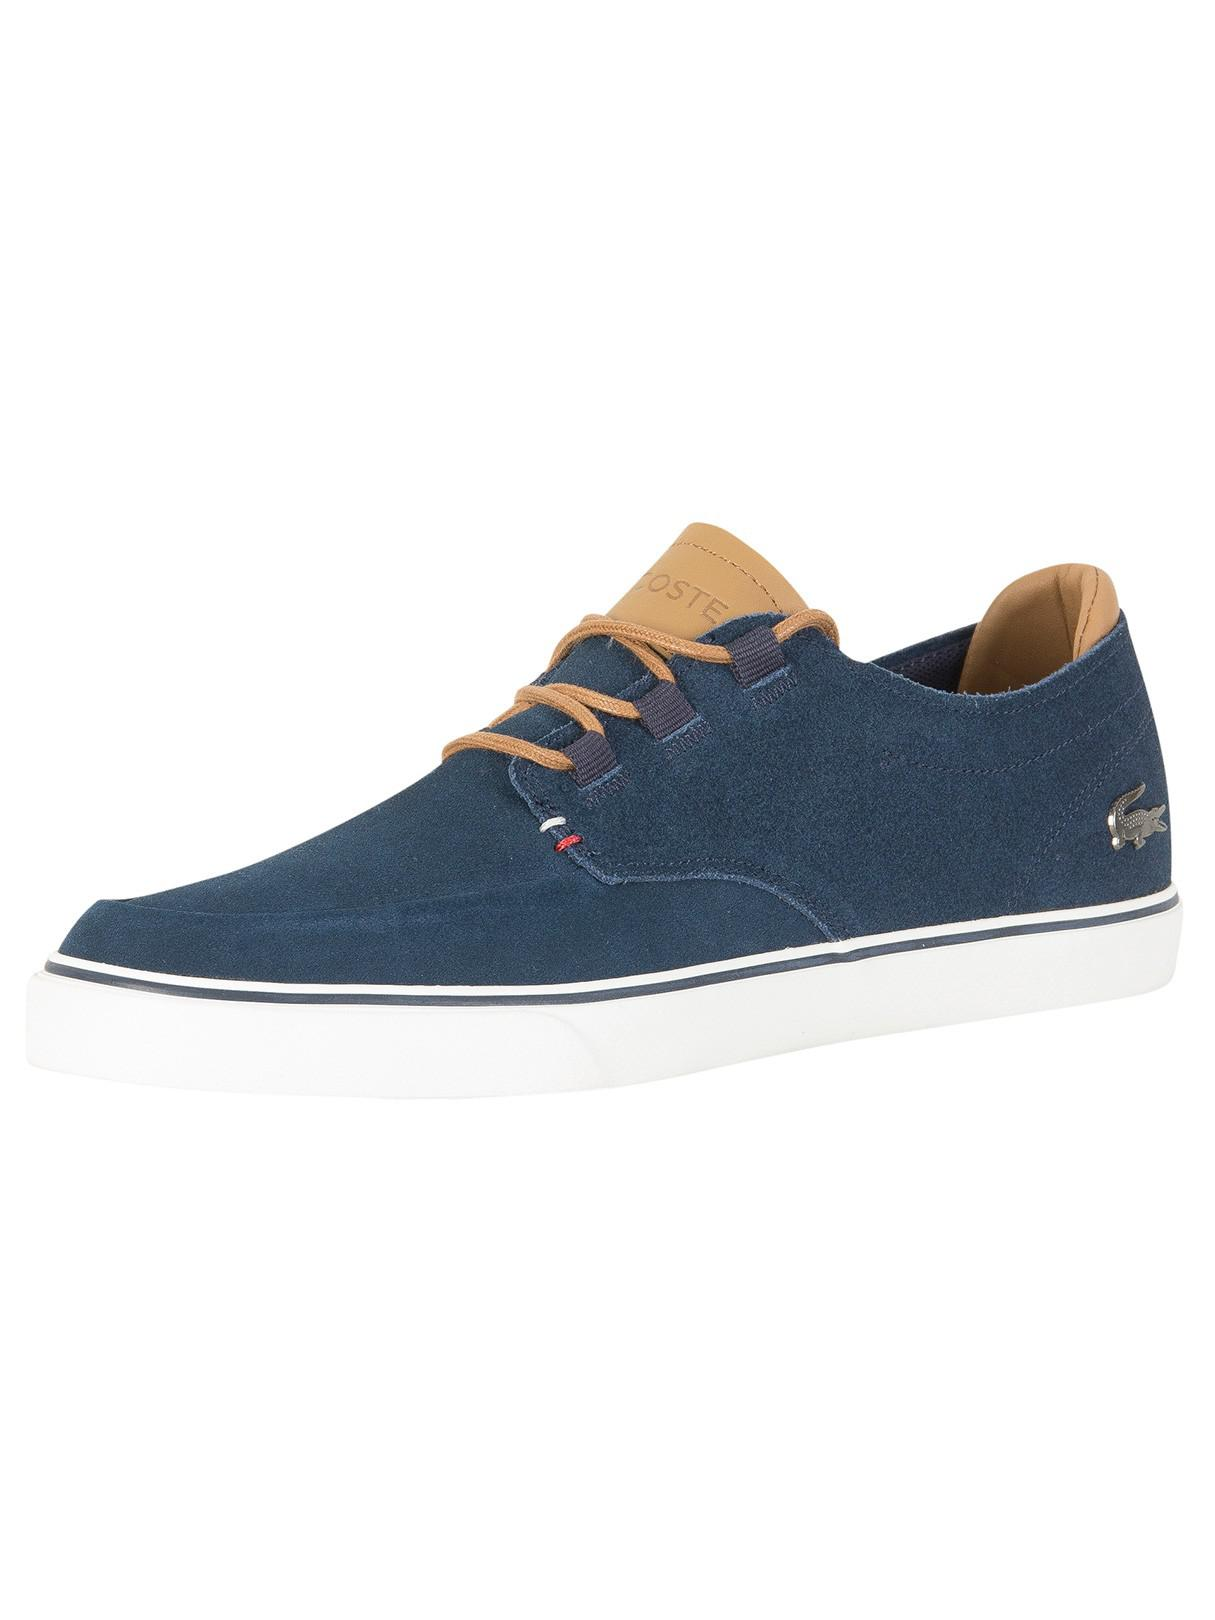 Lacoste Men's Graduate Lcr3 118 1 Leather Trainers - Navy/Light Brown - UK 10 mjGs9zo0Sz